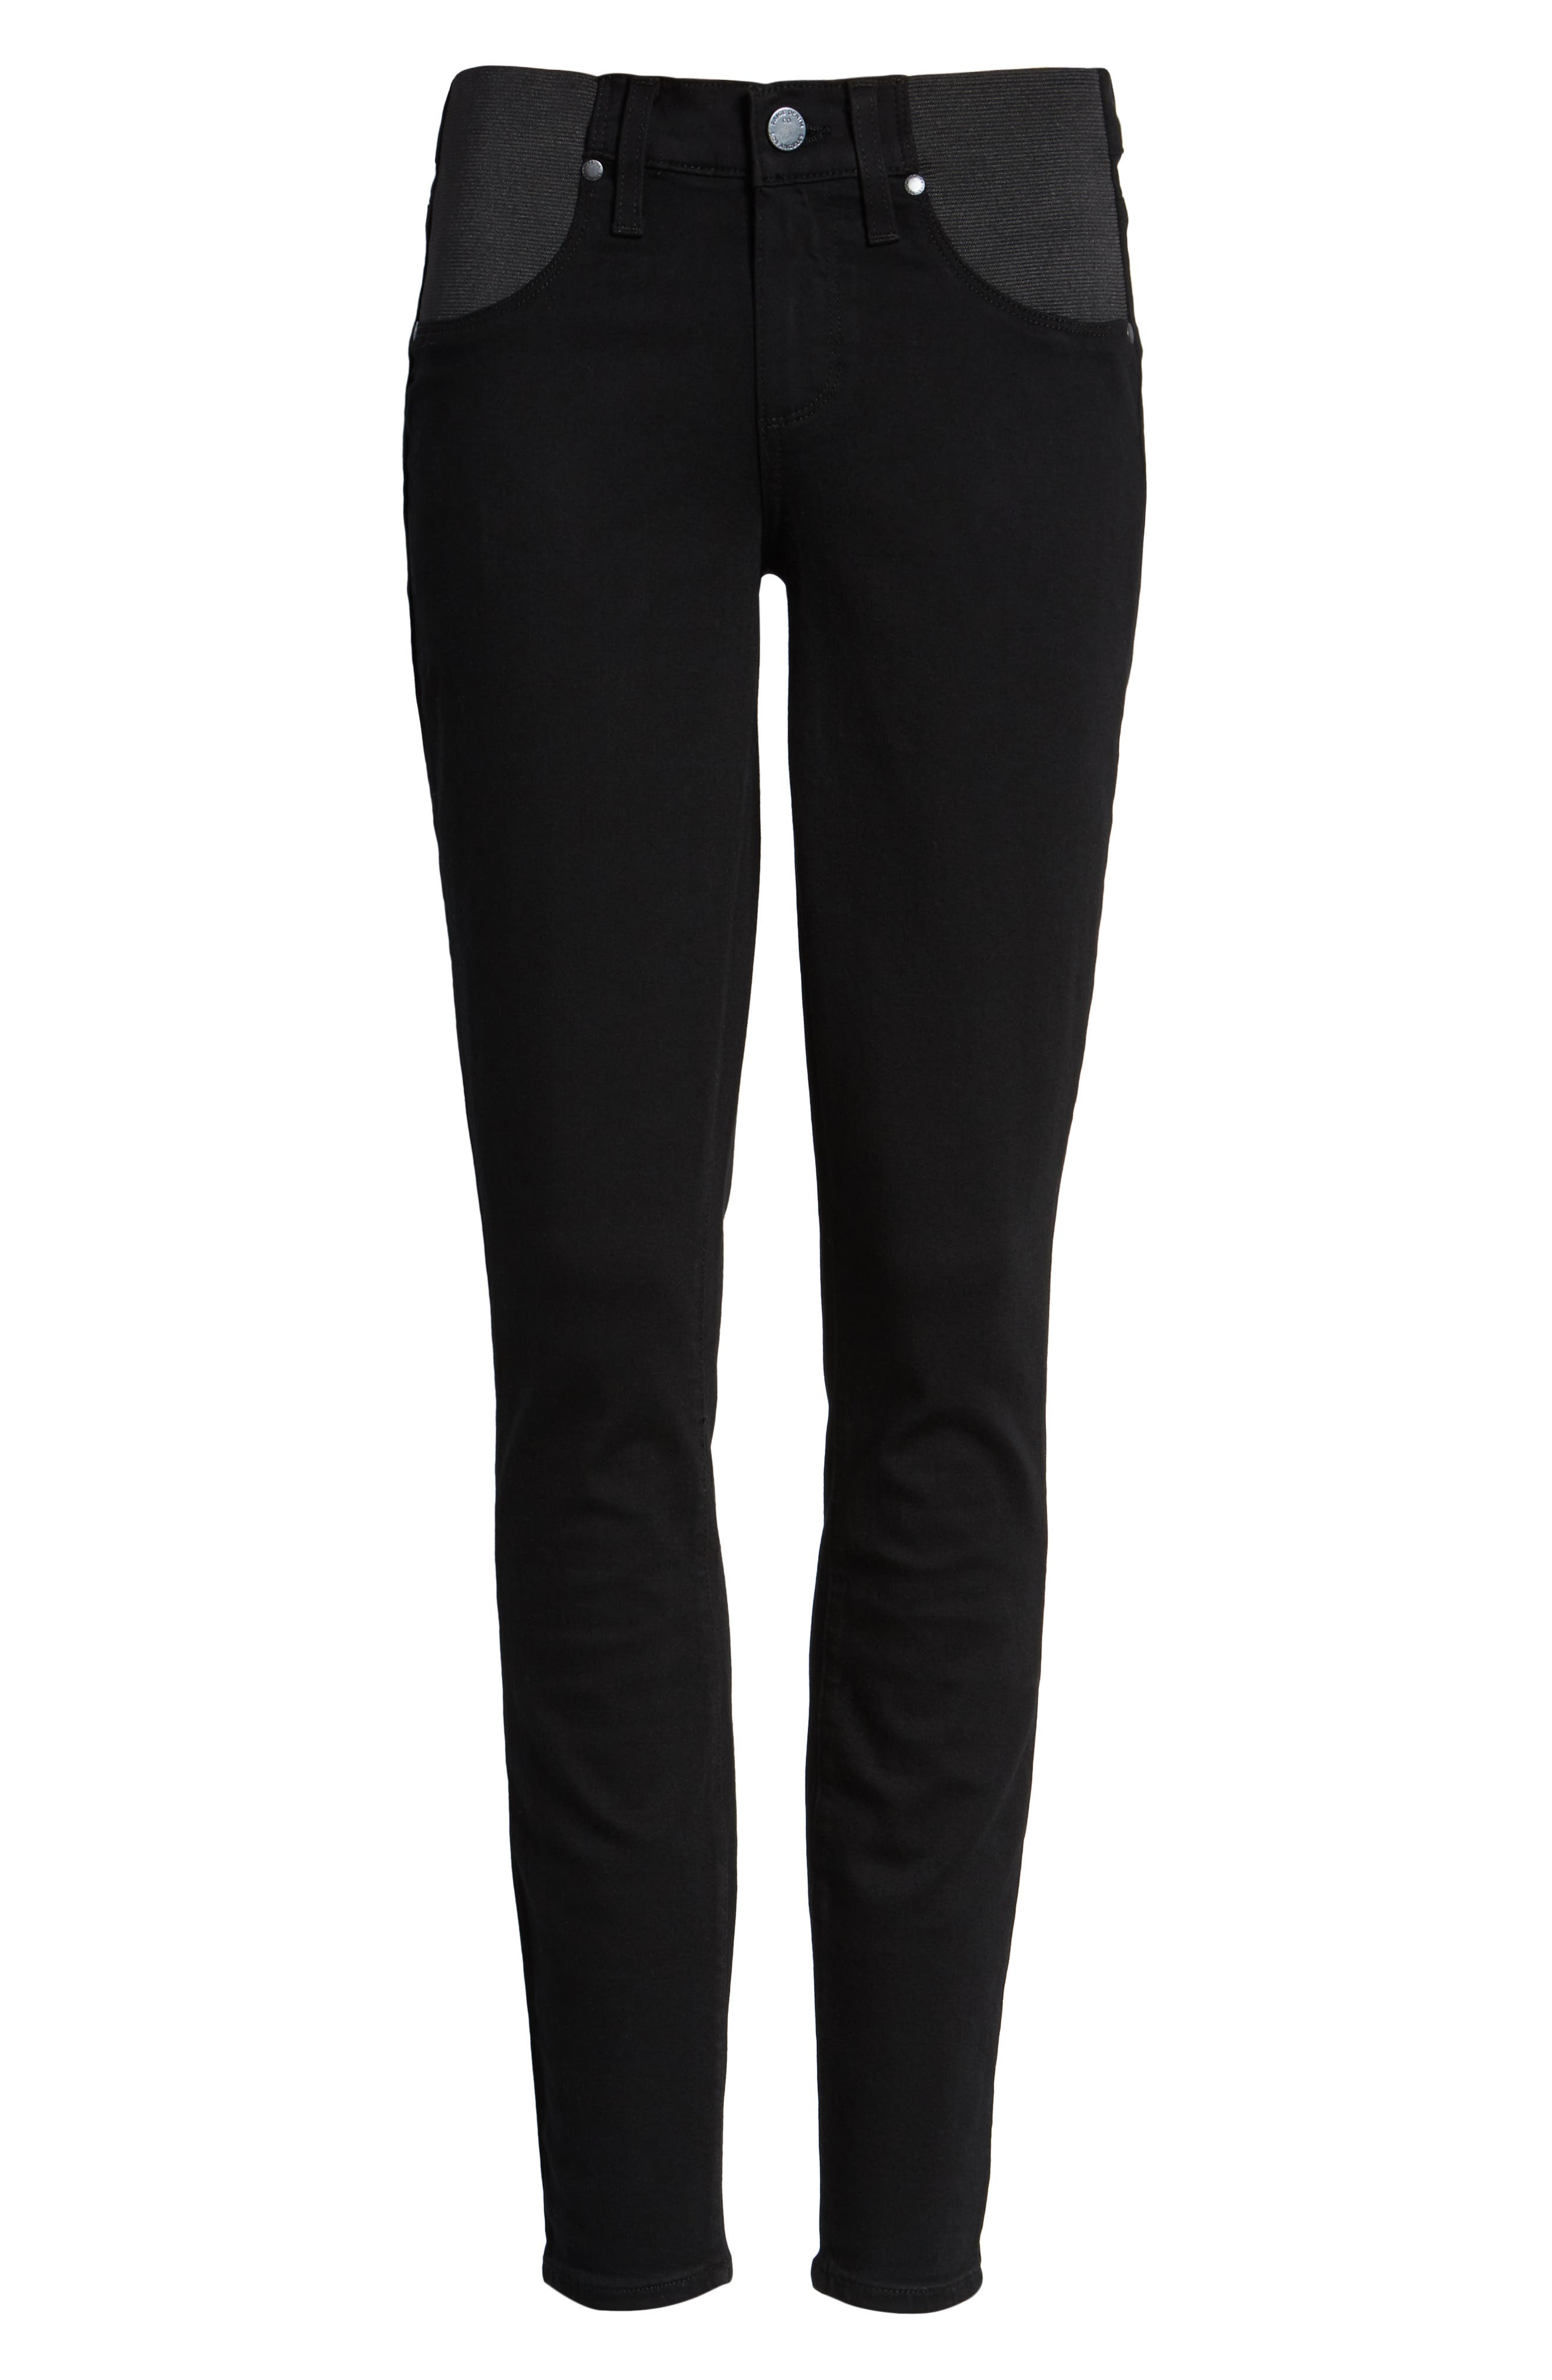 'Transcend - Verdugo Ultra Skinny Maternity Jeans,                             Alternate thumbnail 7, color,                             BLACK SHADOW